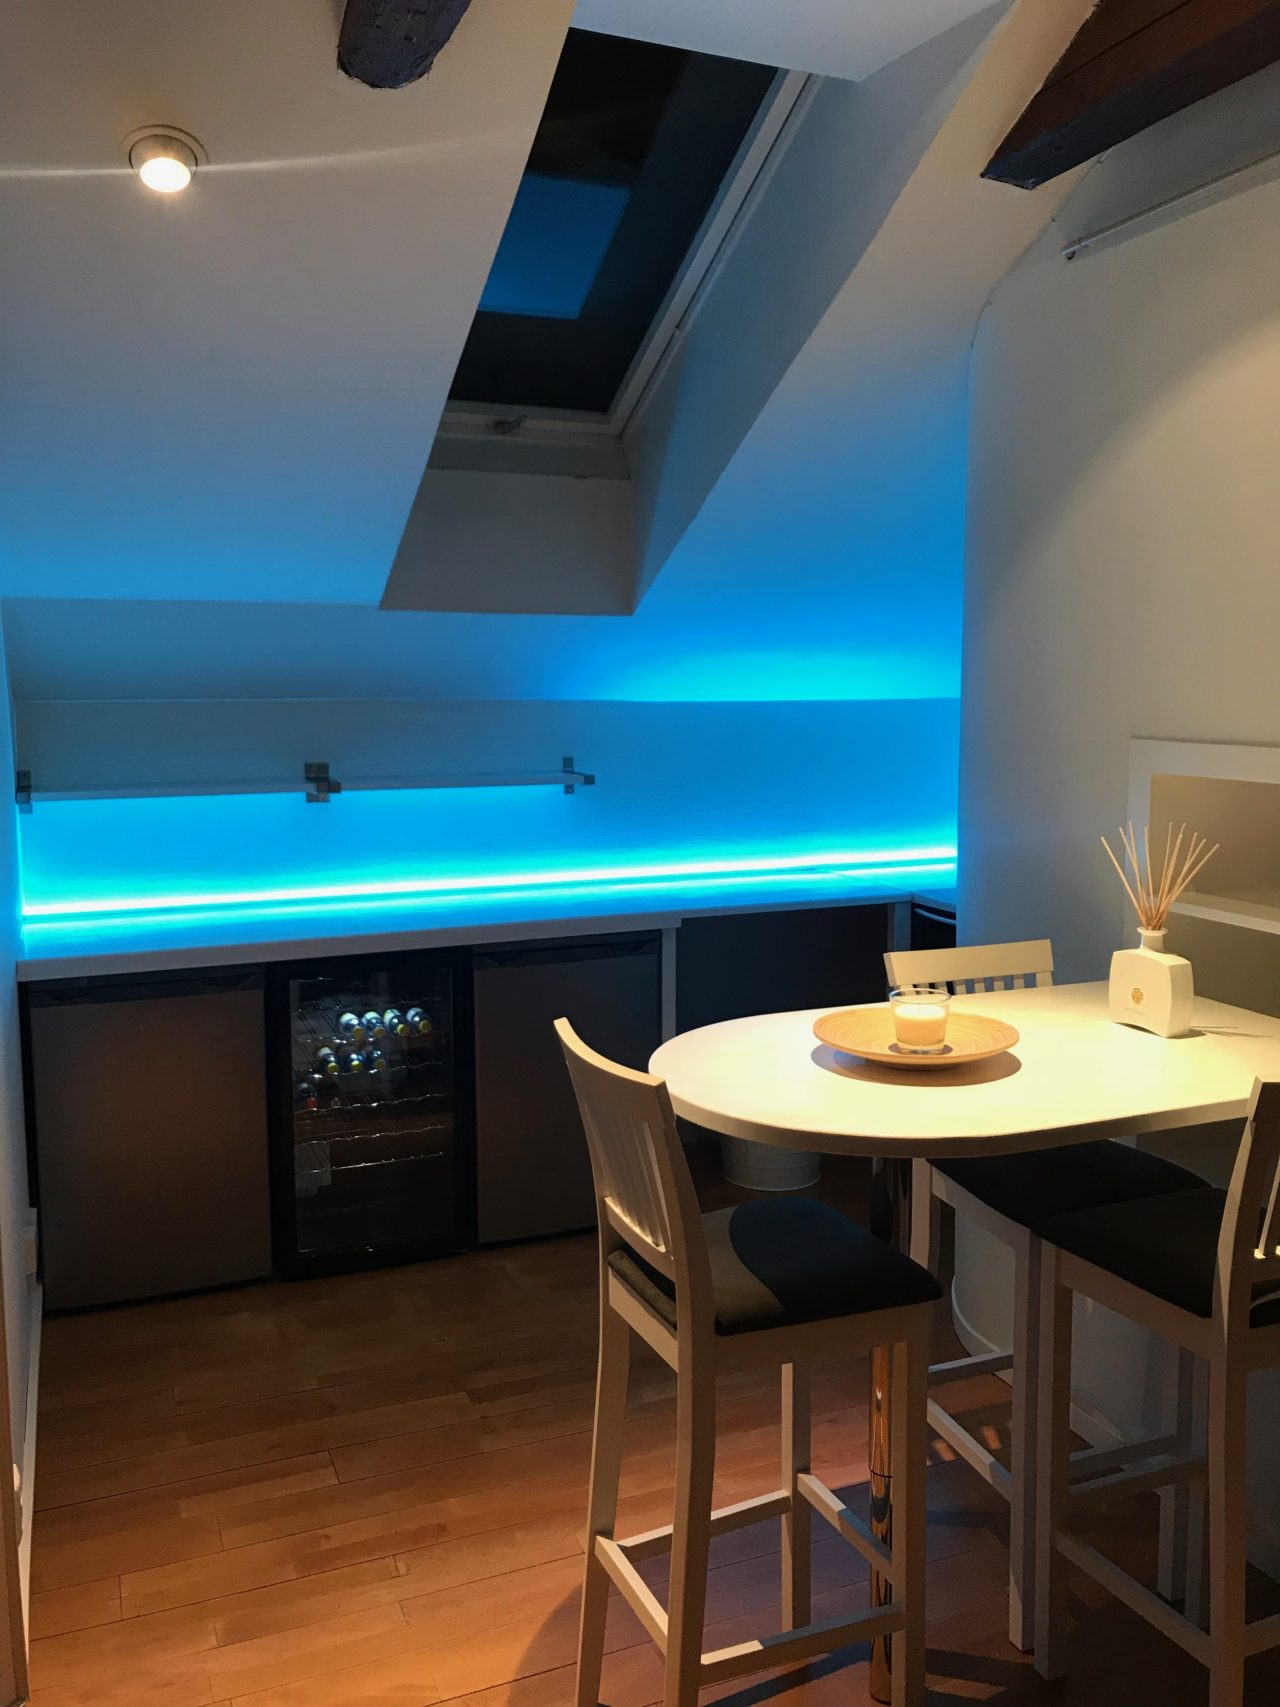 Penthouse Kitchen Table With LED Lights On The Counter Top